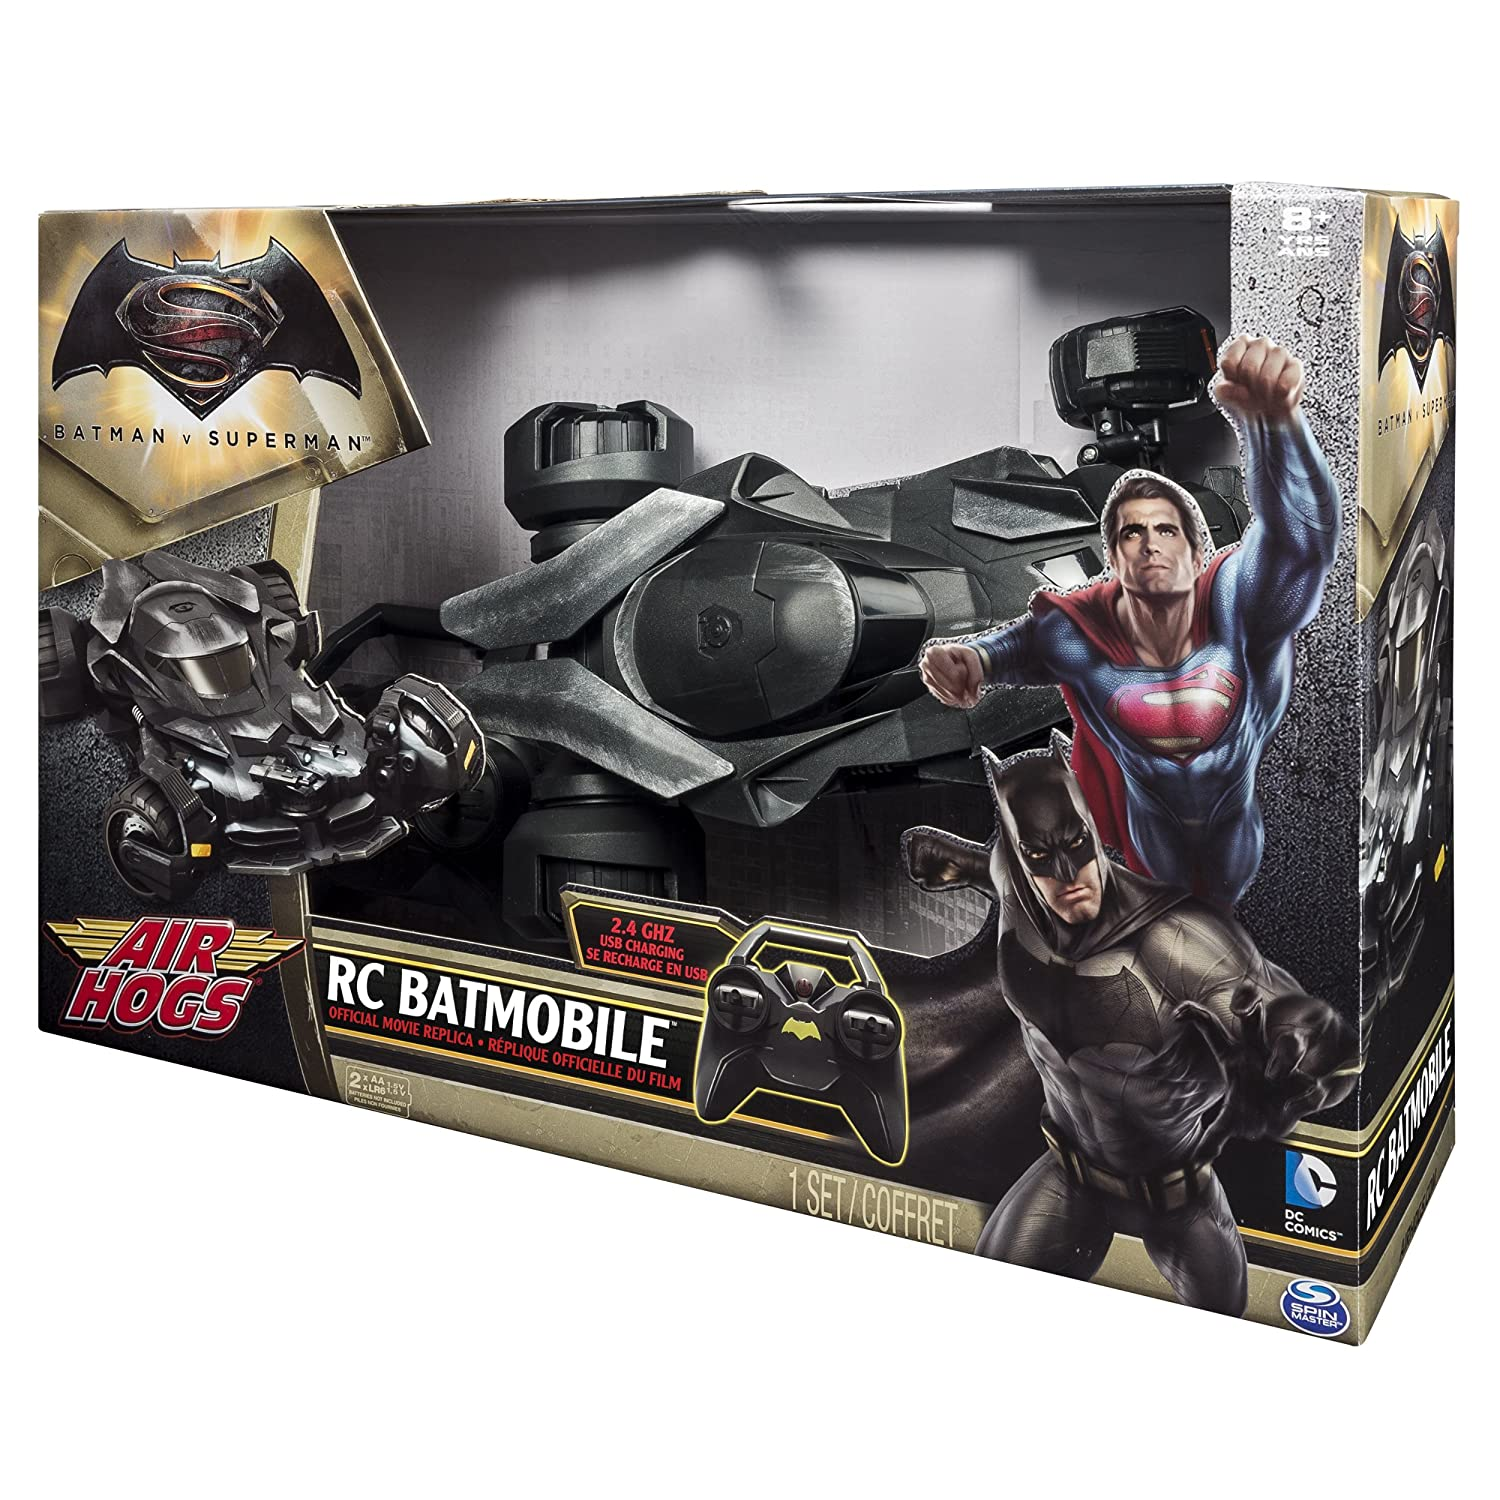 Air Hogs Batmobile Remote Control Vehicle Kids Rc Vehicle Play Toy